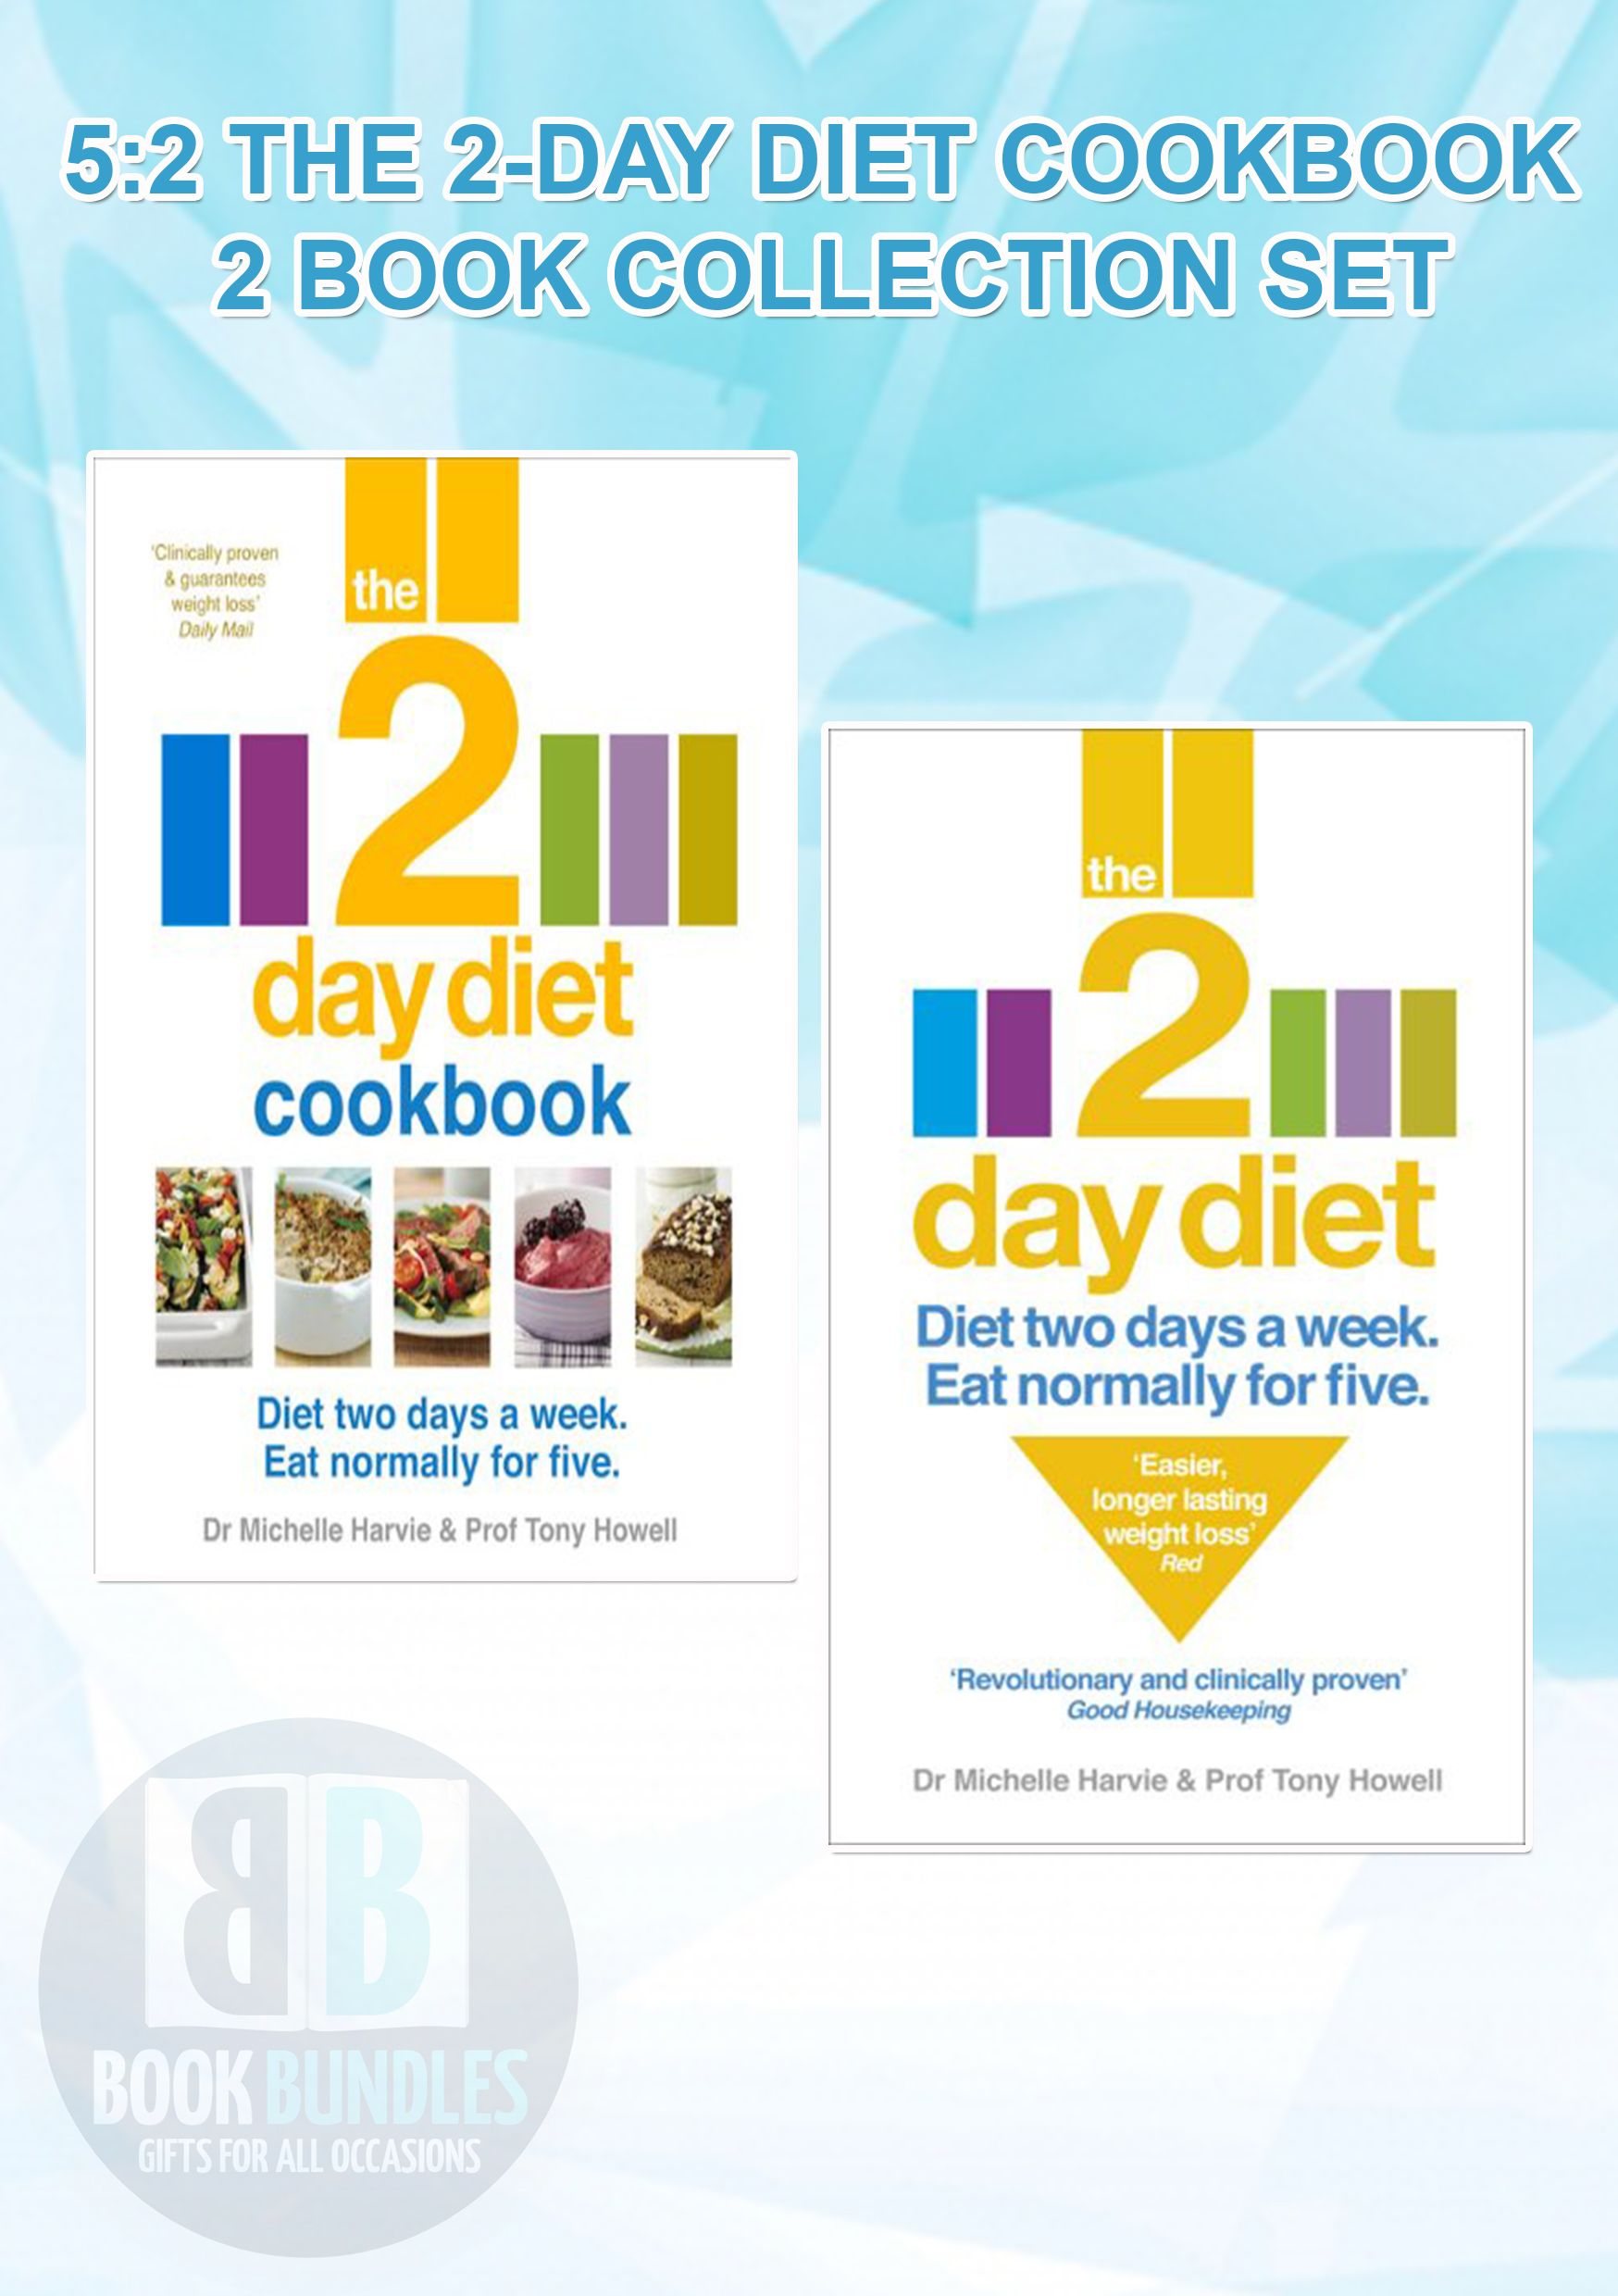 Dr. Michelle Harvie 5:2 The 2-Day Diet Cookbook 2 Book Collection Set. #MichelleHarvie #Diet #Cookbook #Dietbooks #BooksCollection